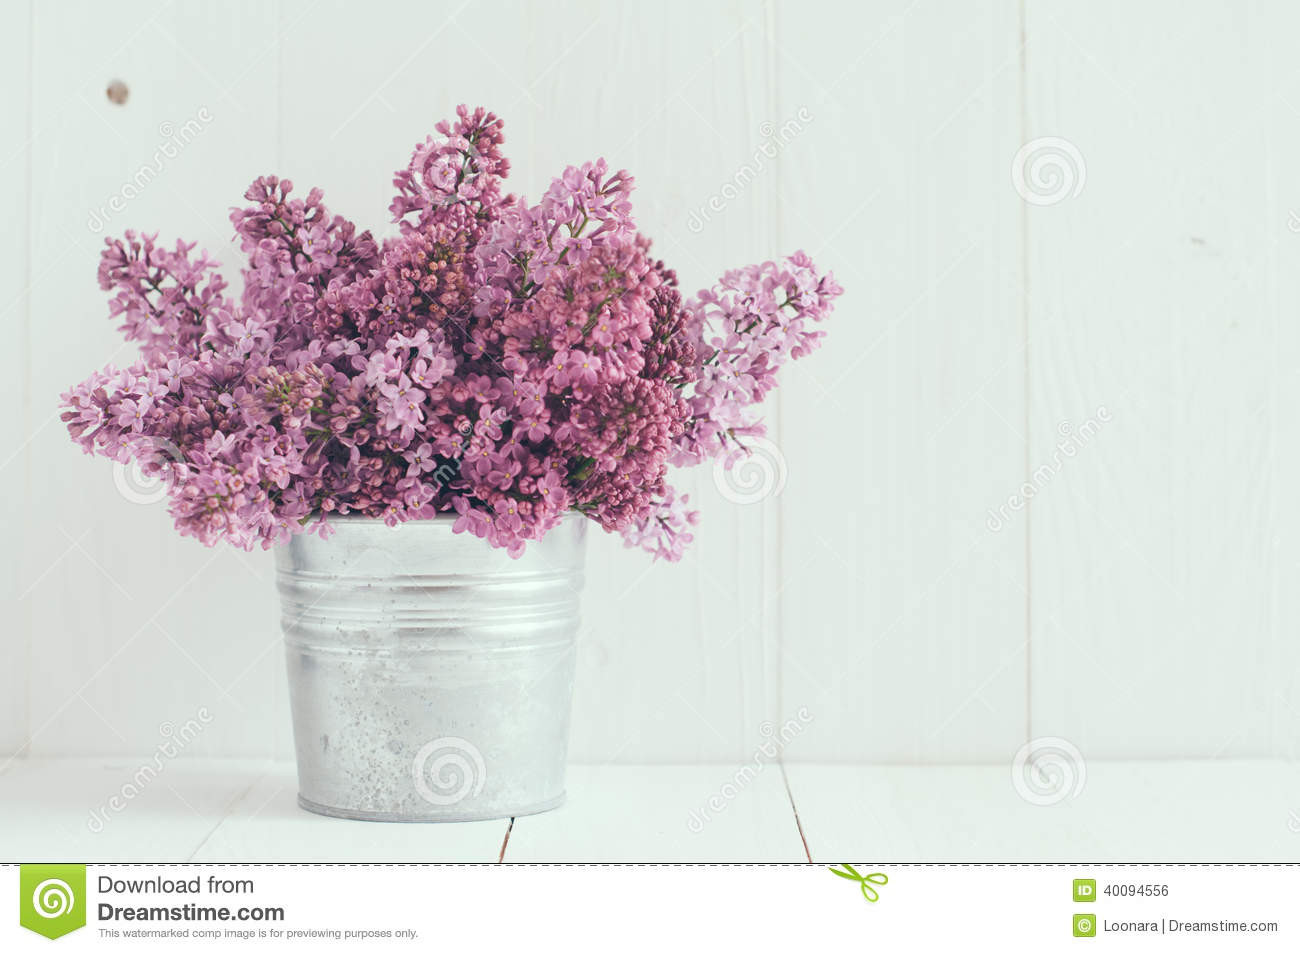 rustic flower vase ideas of flowers of lilac stock photo image of floristic country 40094556 regarding bouquet of beautiful spring flowers of lilac in a vase on a white vintage wooden board home decor in a rustic style